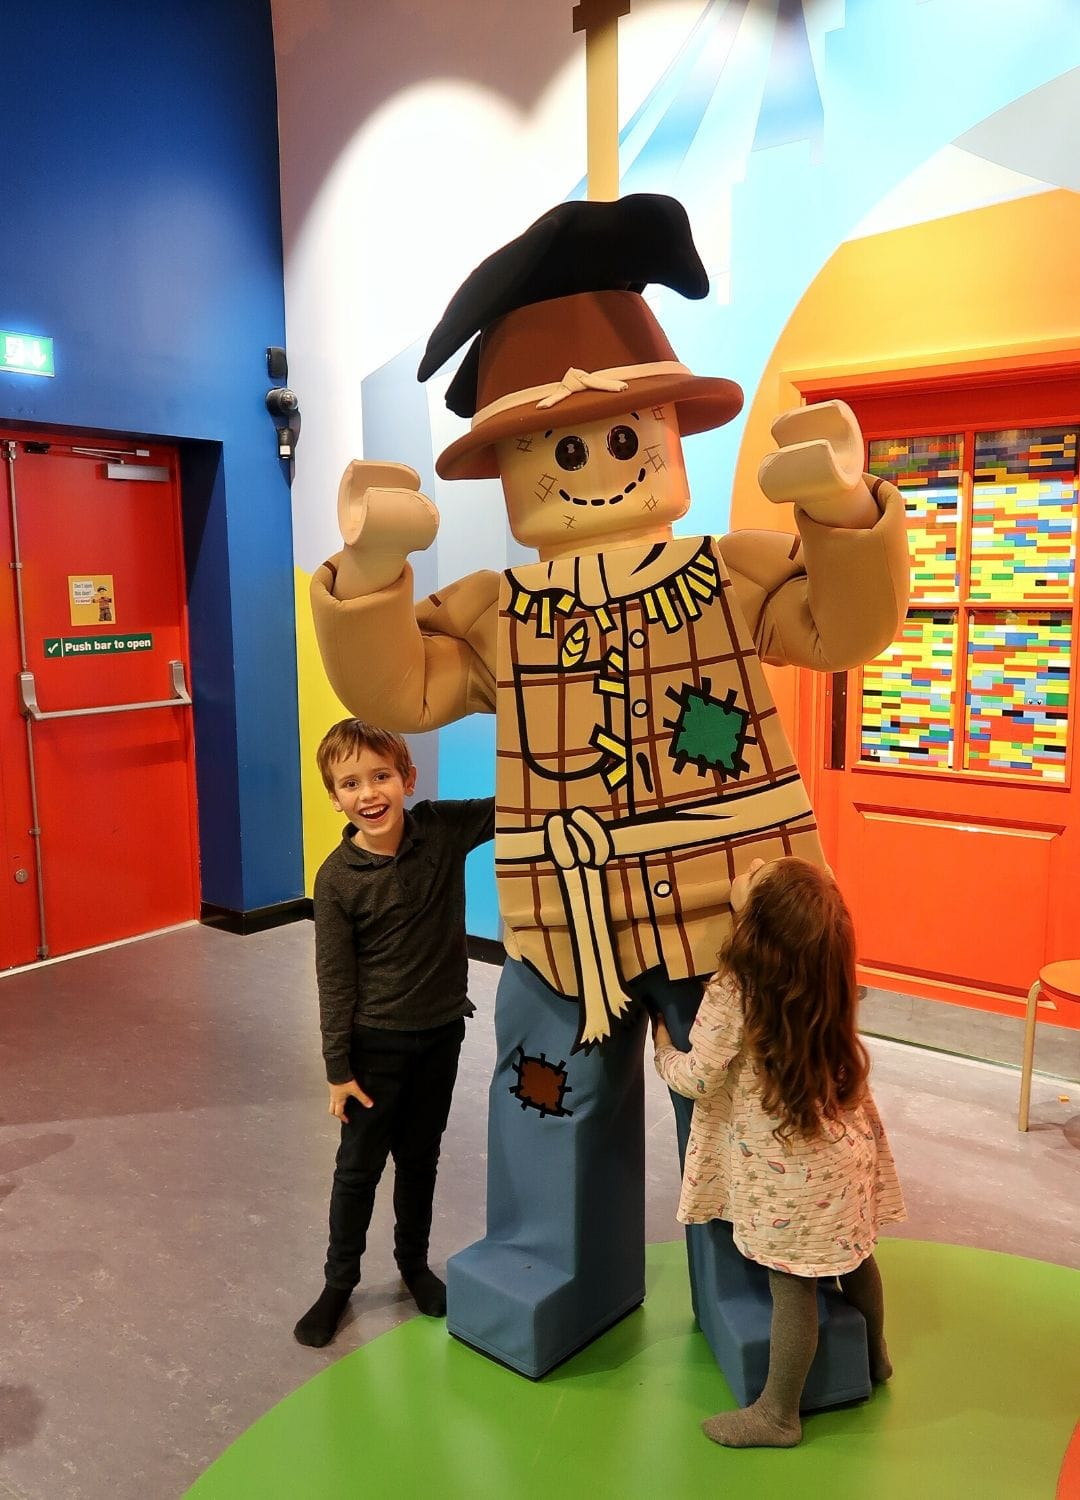 Boy and girl smiling in front of a person dressed as a lego character